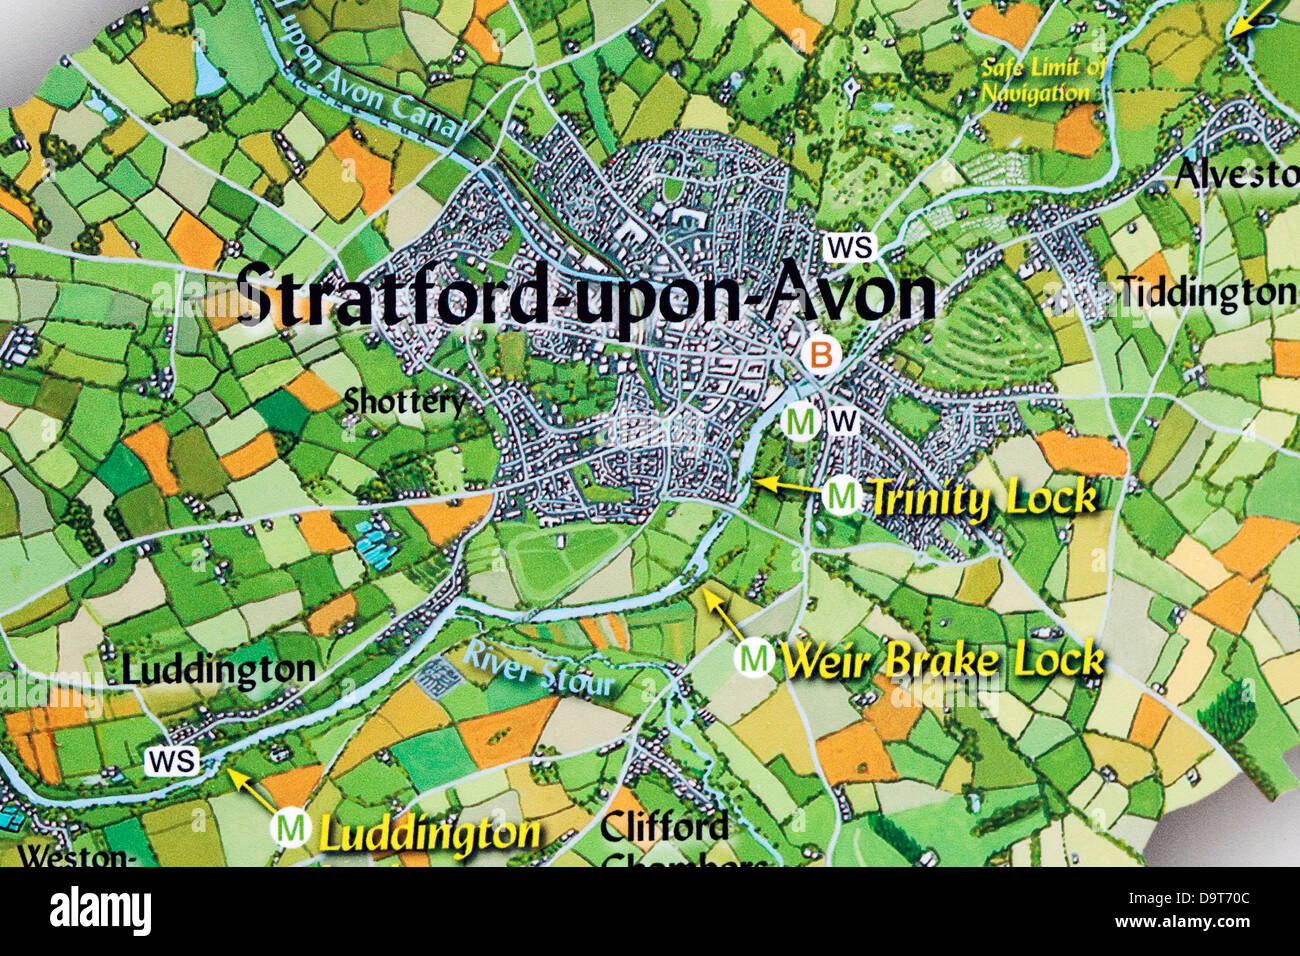 A Navigation map of Stratford upon Avon - Stock Image